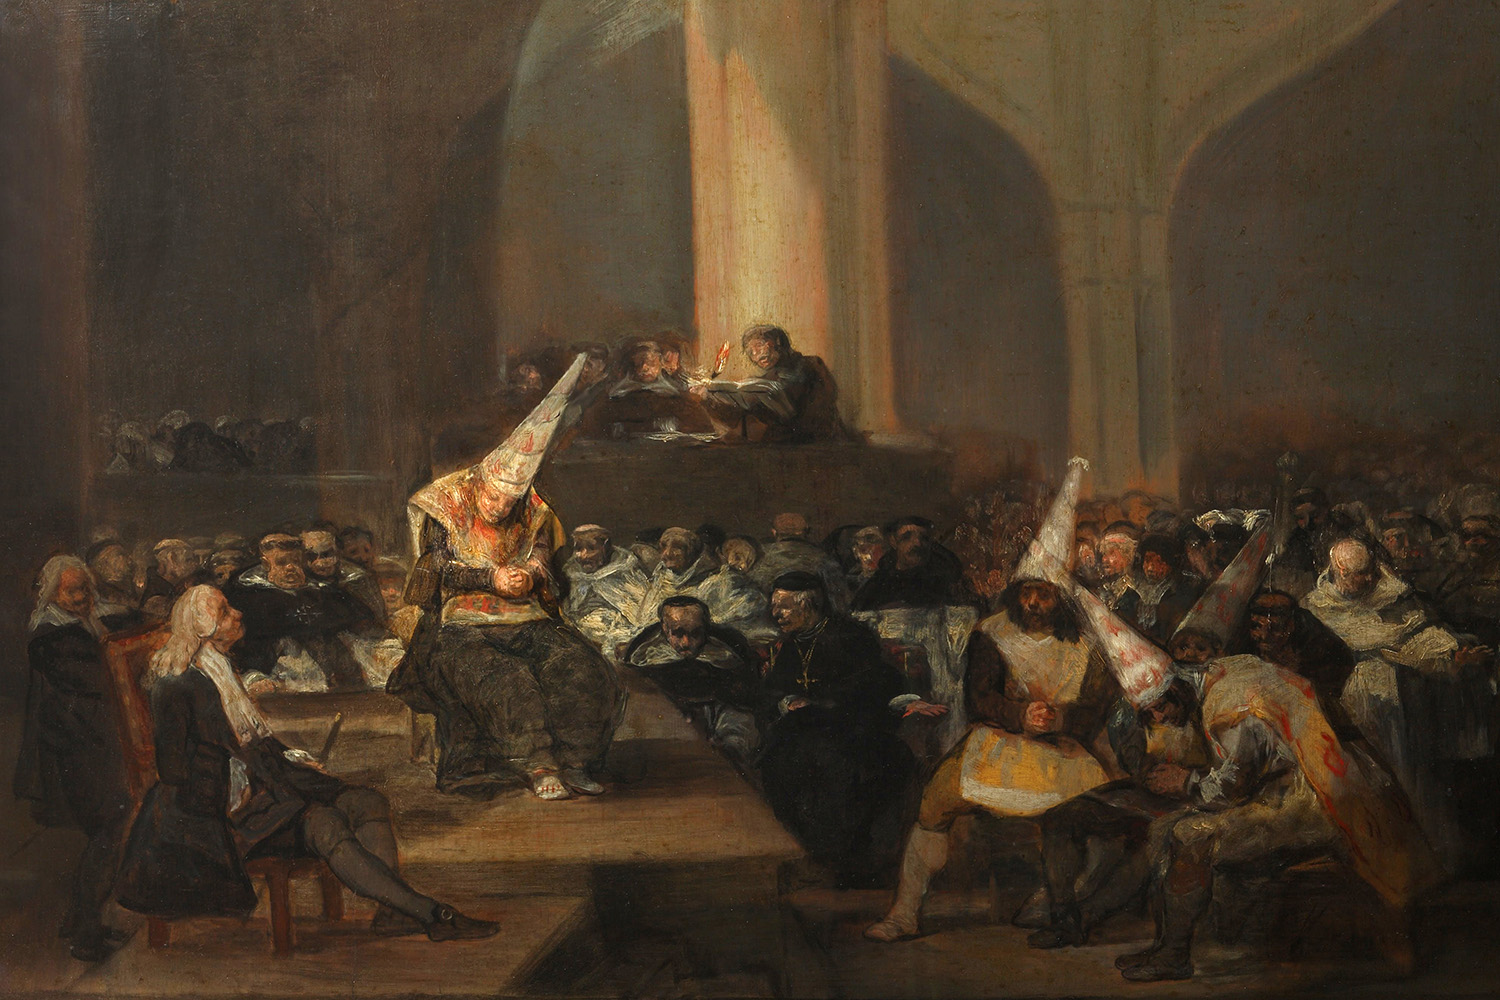 The Inquisition Tribunal by Francisco de Goya, c.1808-12.